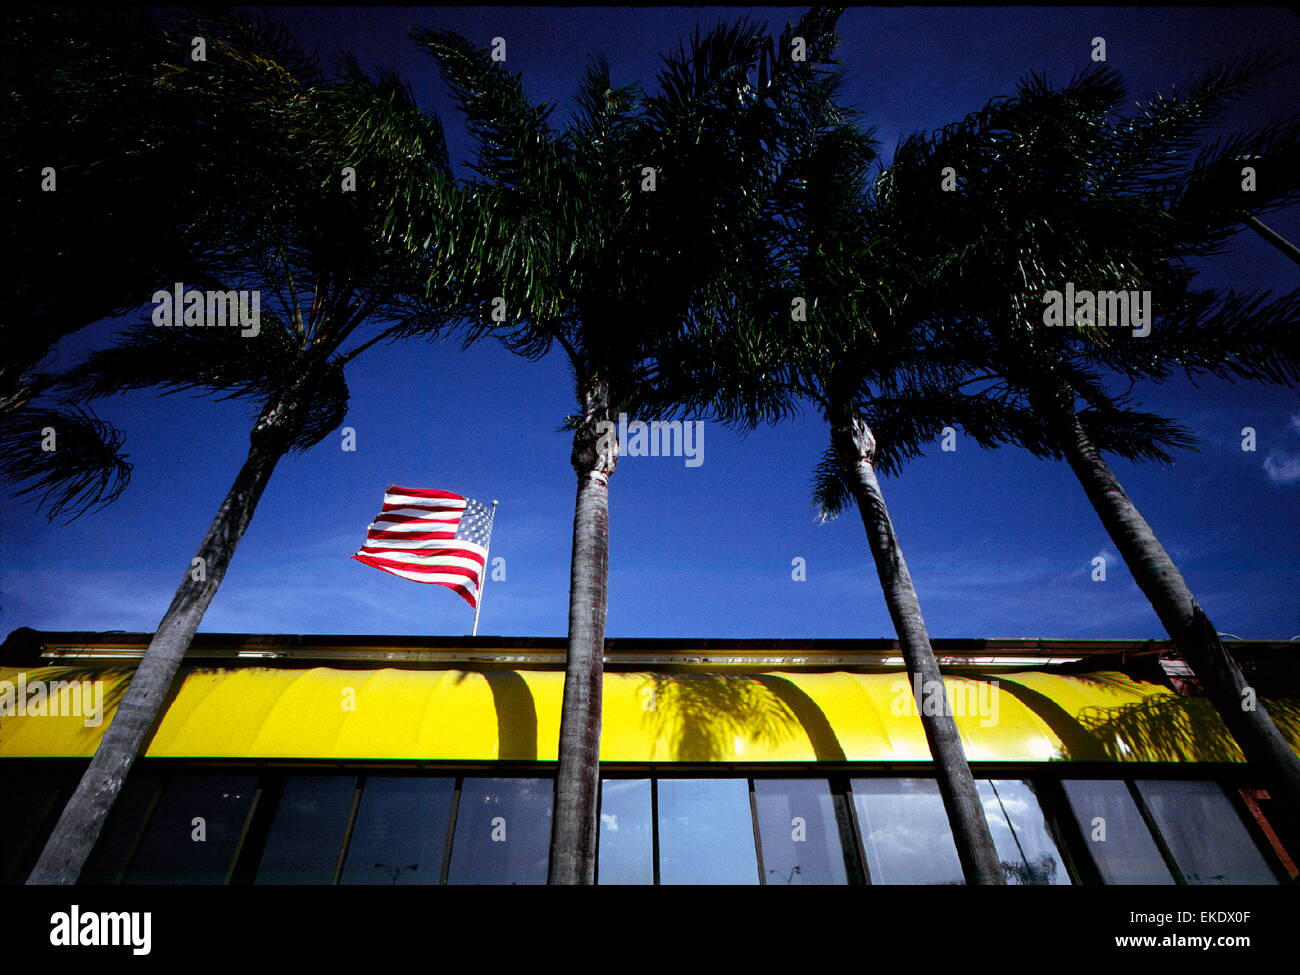 AJAXNETPHOTO. - 1999. NAPLES, FLORIDA, USA. - FLAG - STARS AND STRIPES FLUTTERS FROM ROOF OF A DINER. PHOTO: JONATHAN - Stock Image